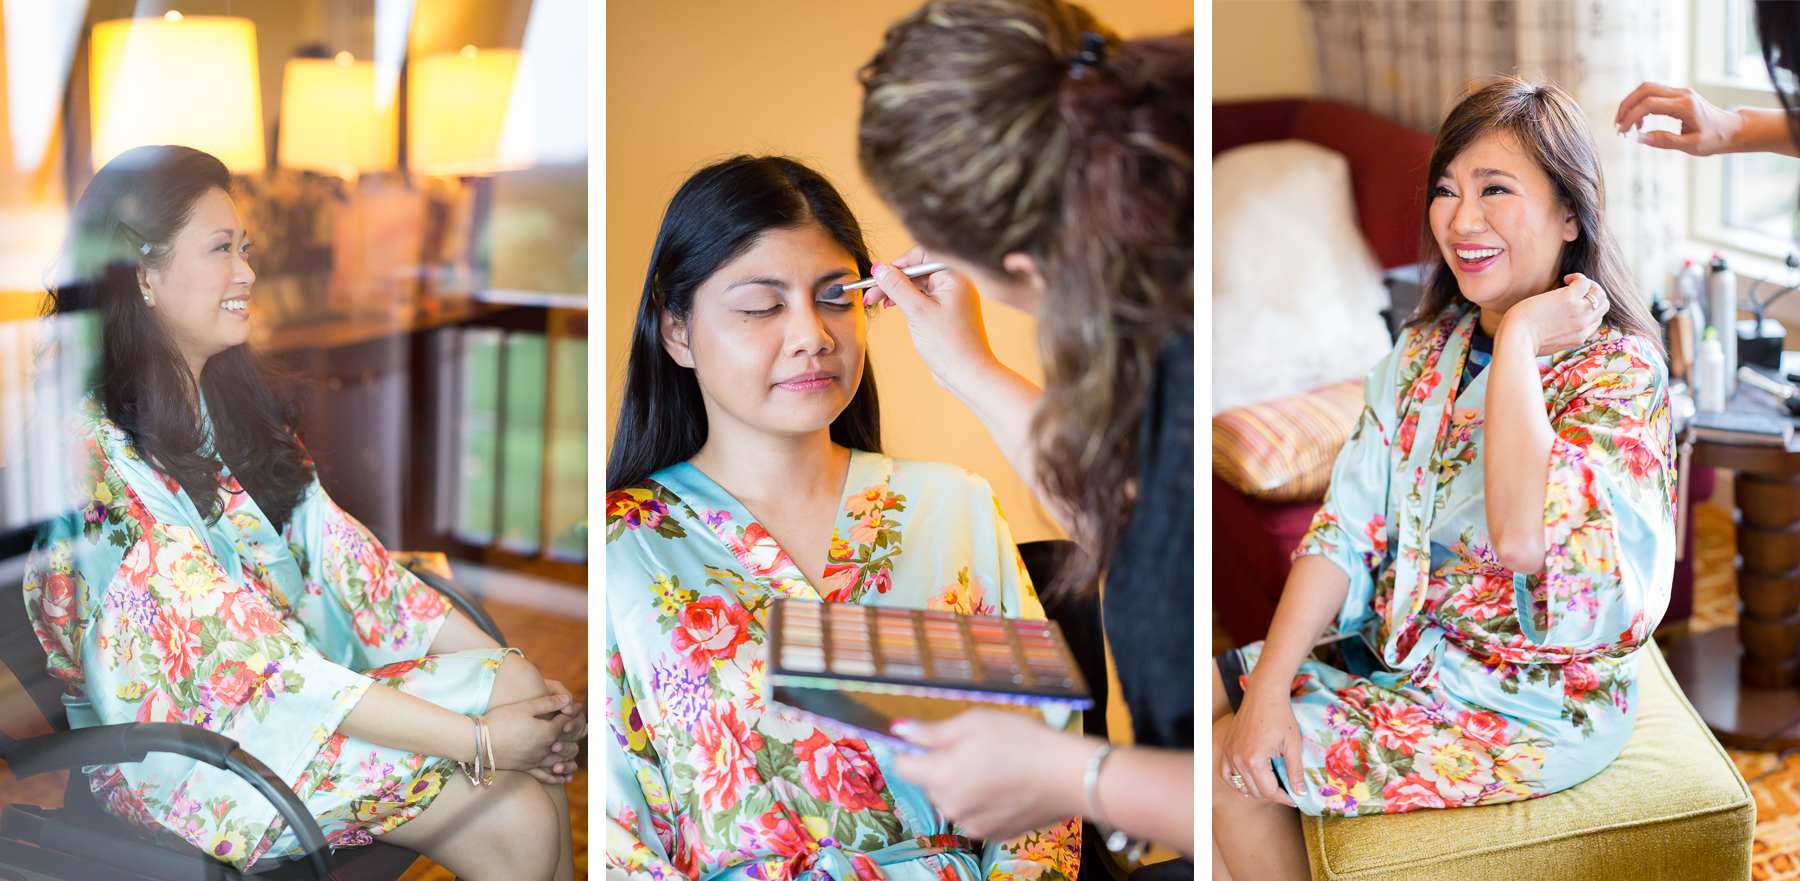 floral-robes-bridesmaids-getting-ready.jpg